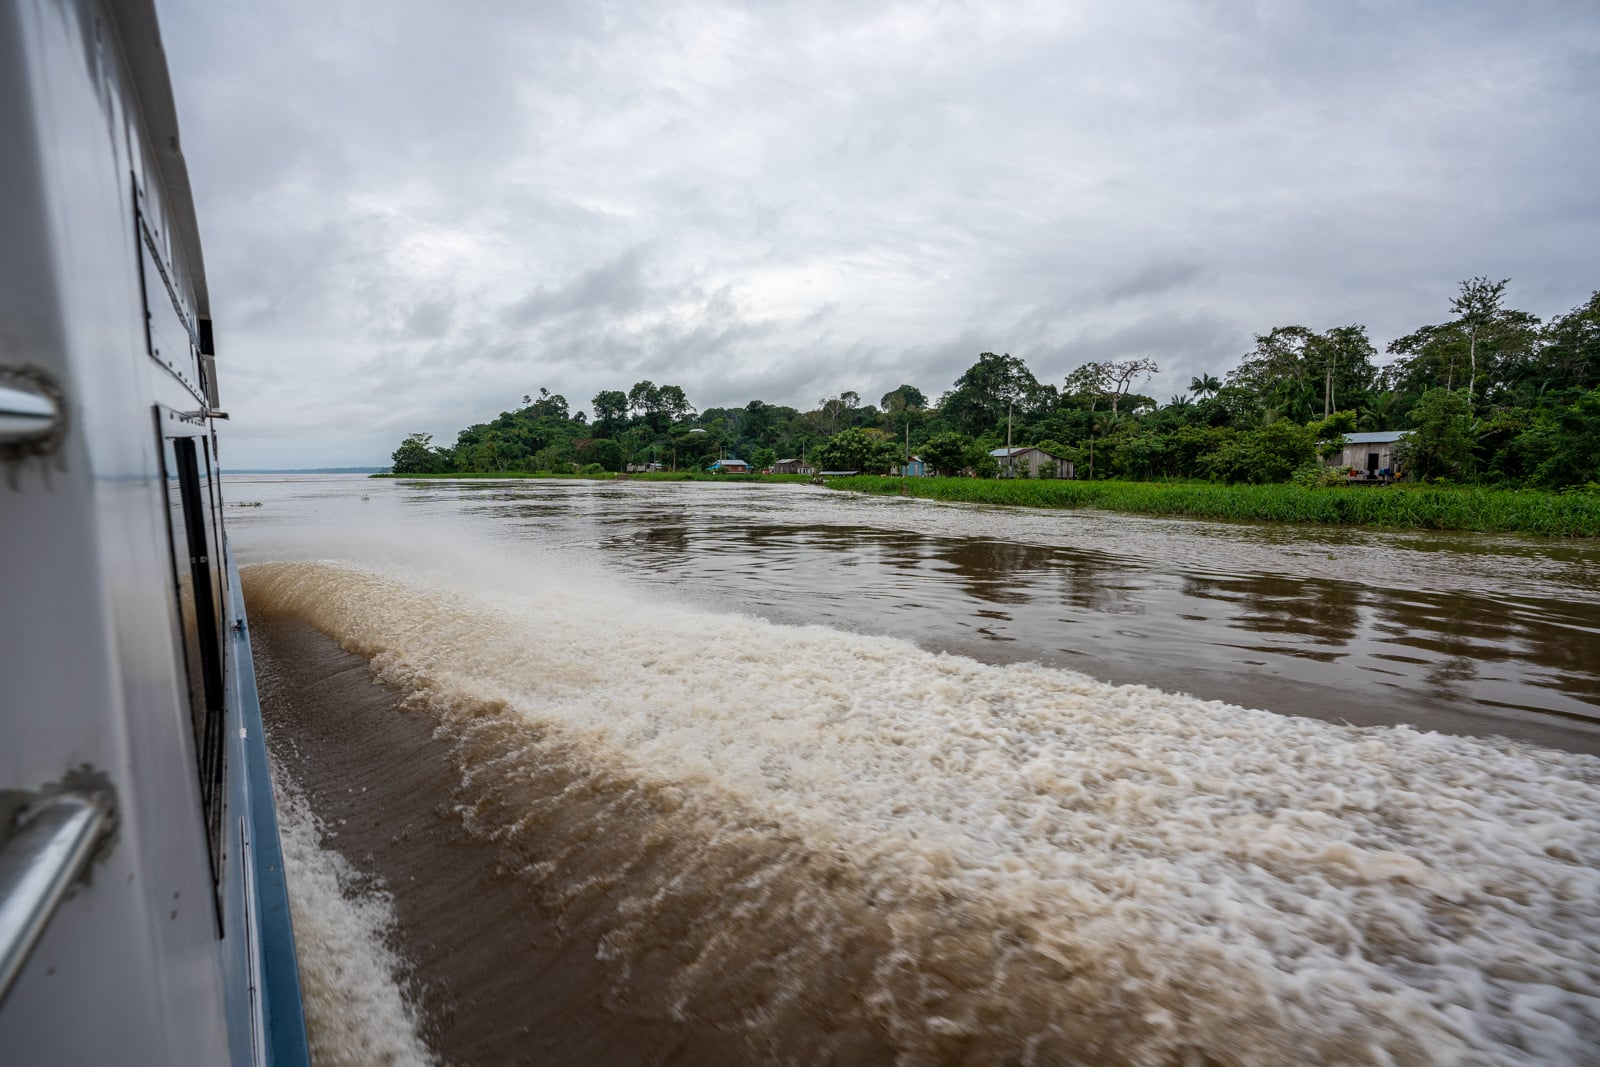 Taking the fast boat from Manaus, Brazil to Leticia, Colombia - Exterior of the fast boat and views of riverside Amazonian houses - Lost With Purpose travel blog